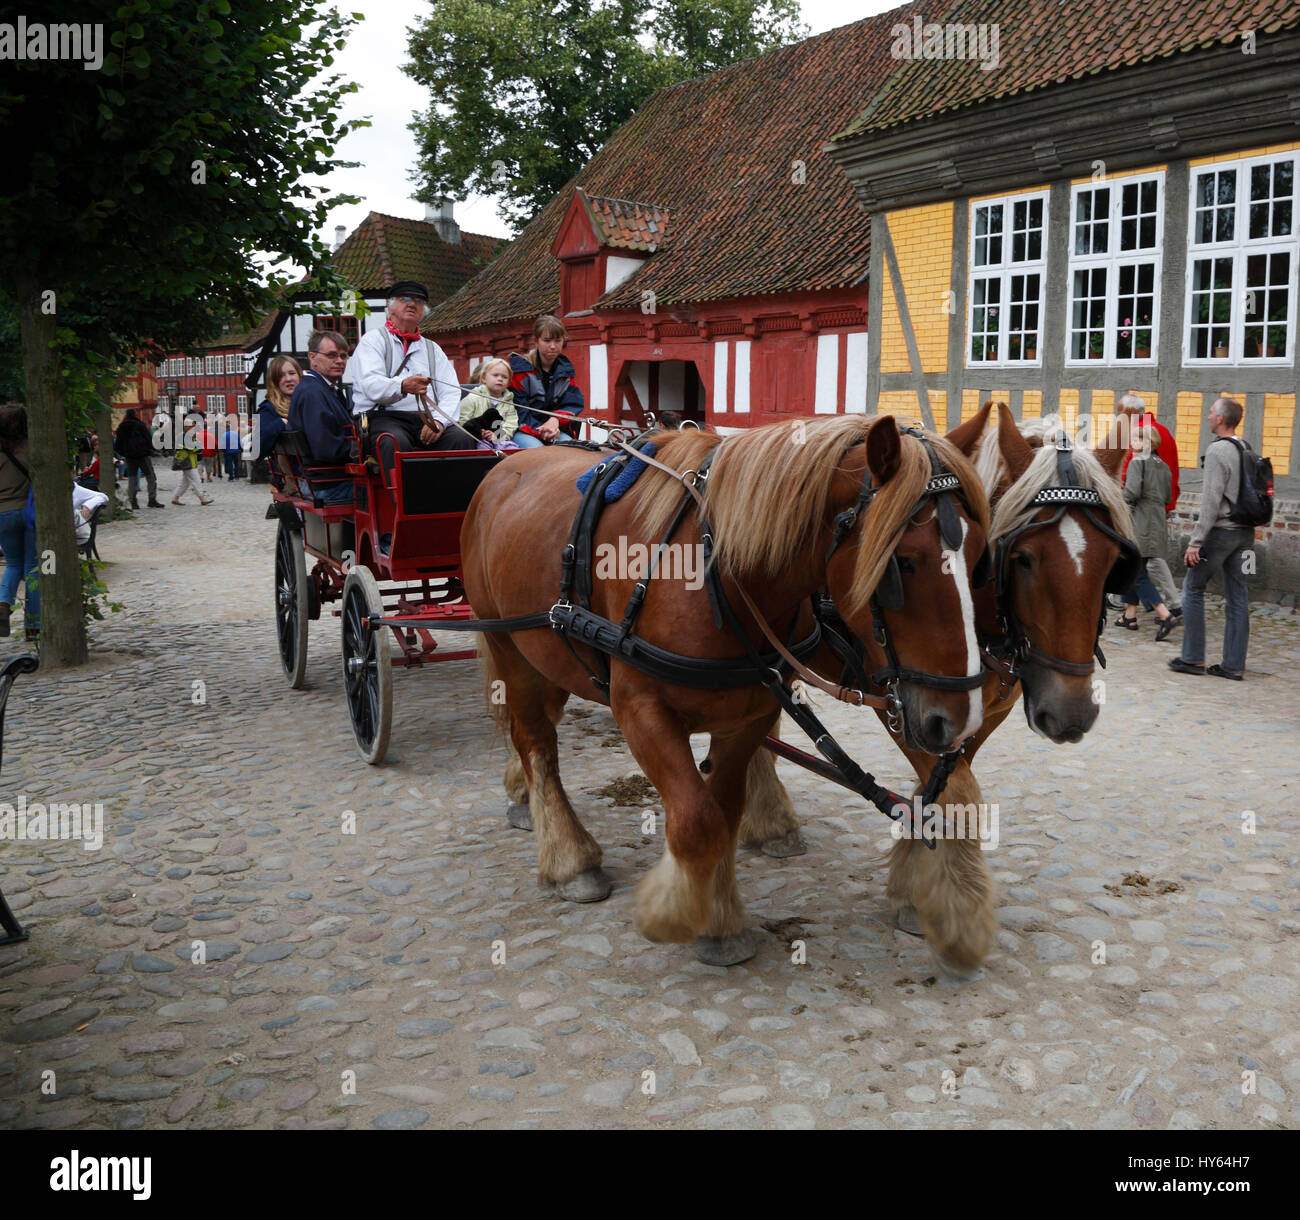 Open air museum The OLD TOWN ( GAMLE BY), Aarhus, Denmark, Scandinavia, Europe Stock Photo